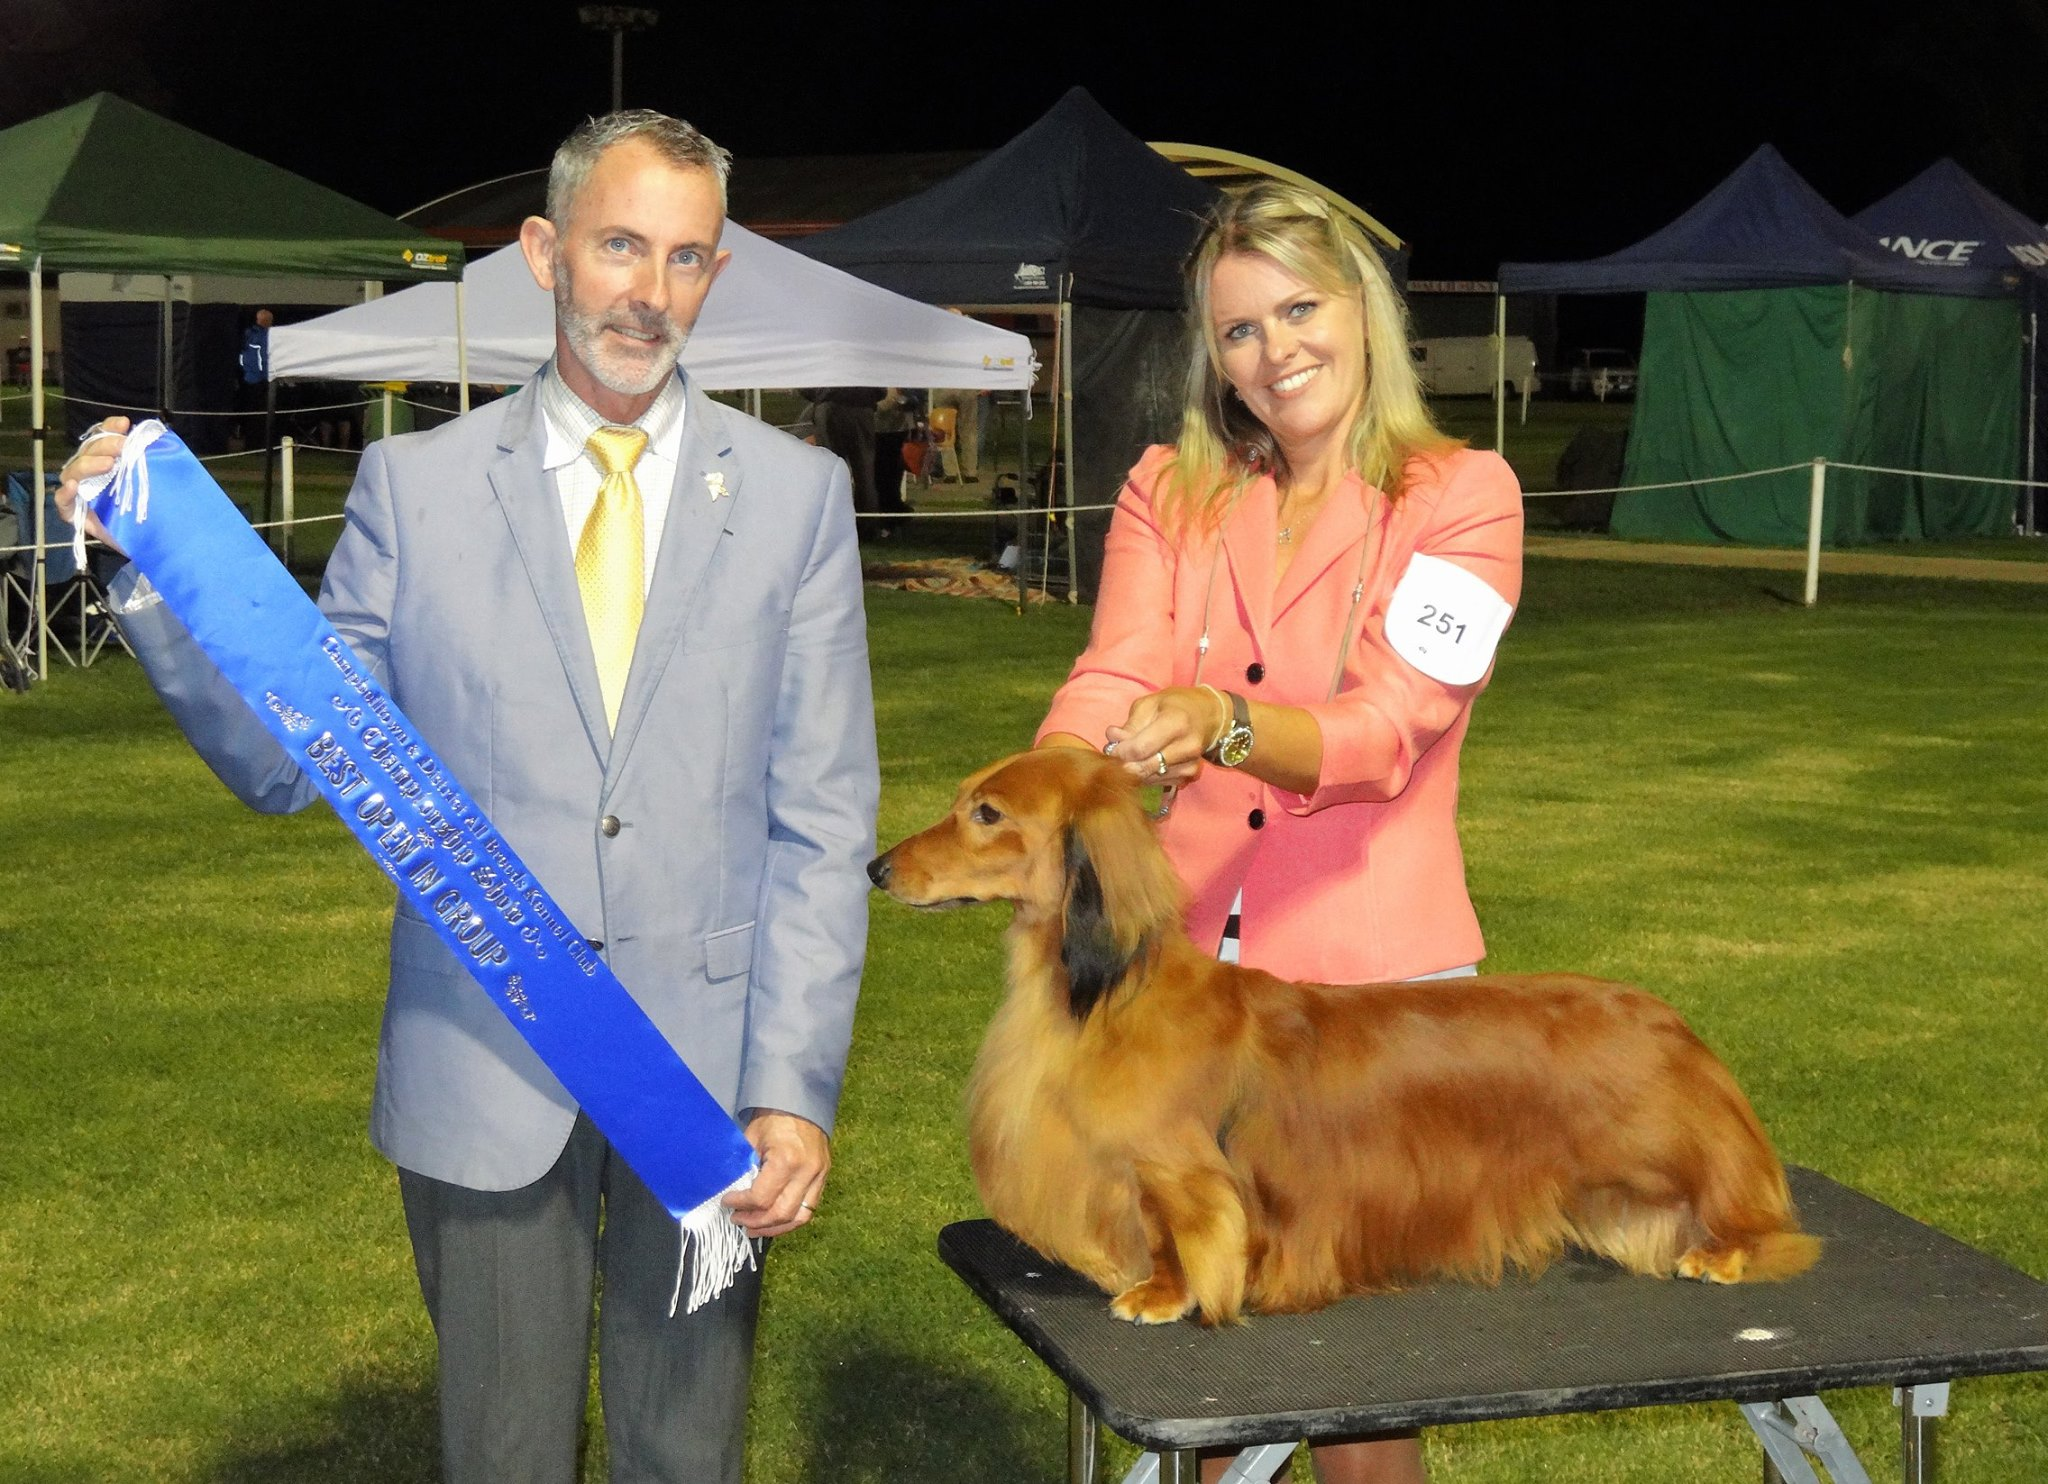 Jimmy Wins Best in Group at Campbelltown & Districts All Breeds Kennel Club